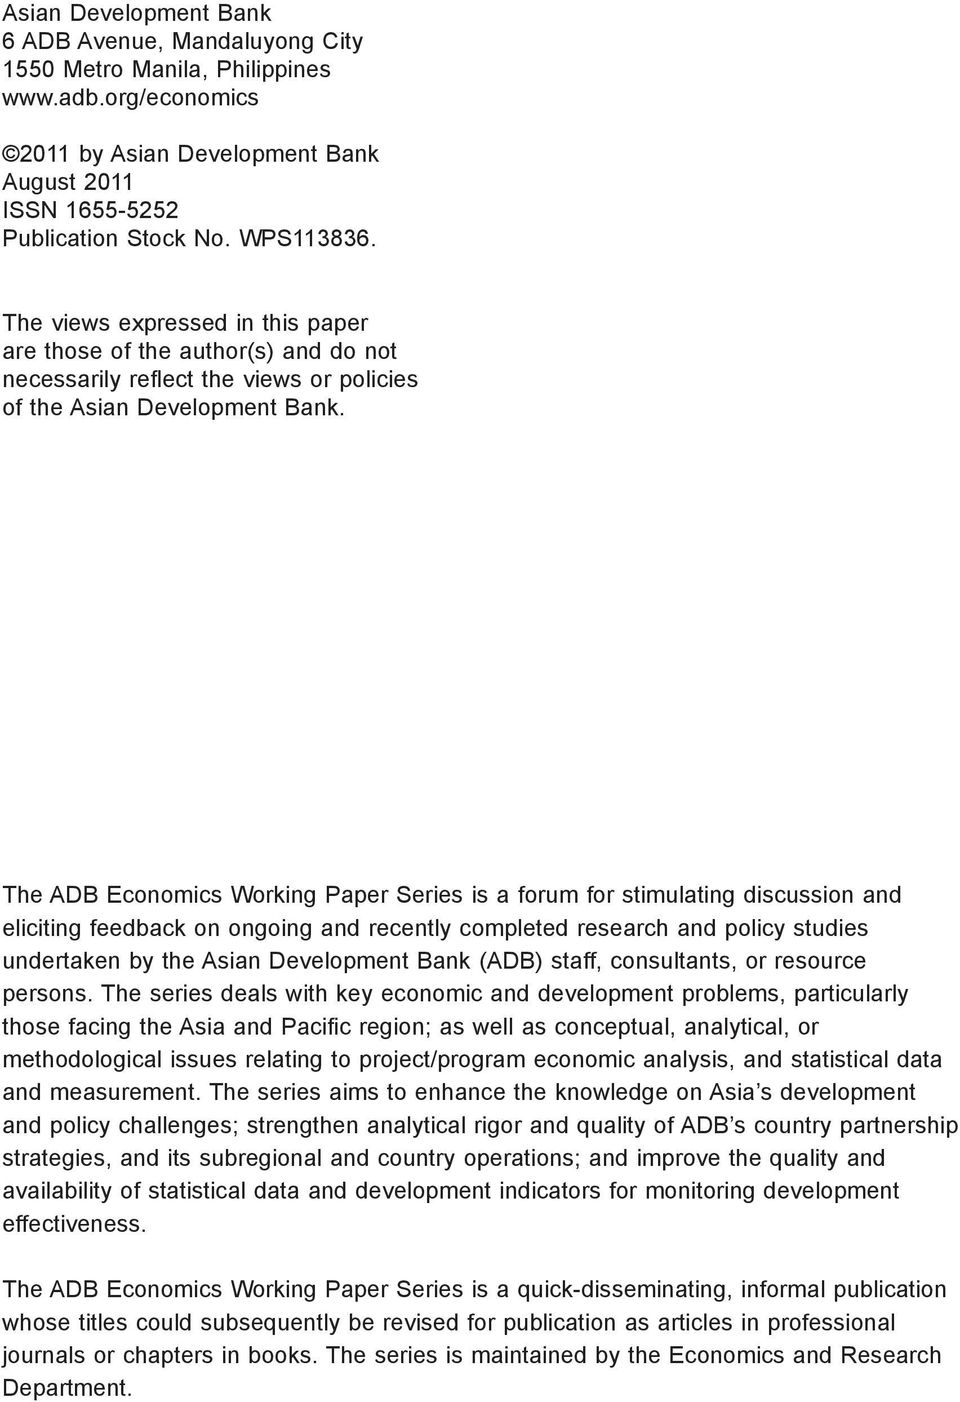 The ADB Economics Working Paper Series is a forum for stimulating discussion and eliciting feedback on ongoing and recently completed research and policy studies undertaken by the Asian Development